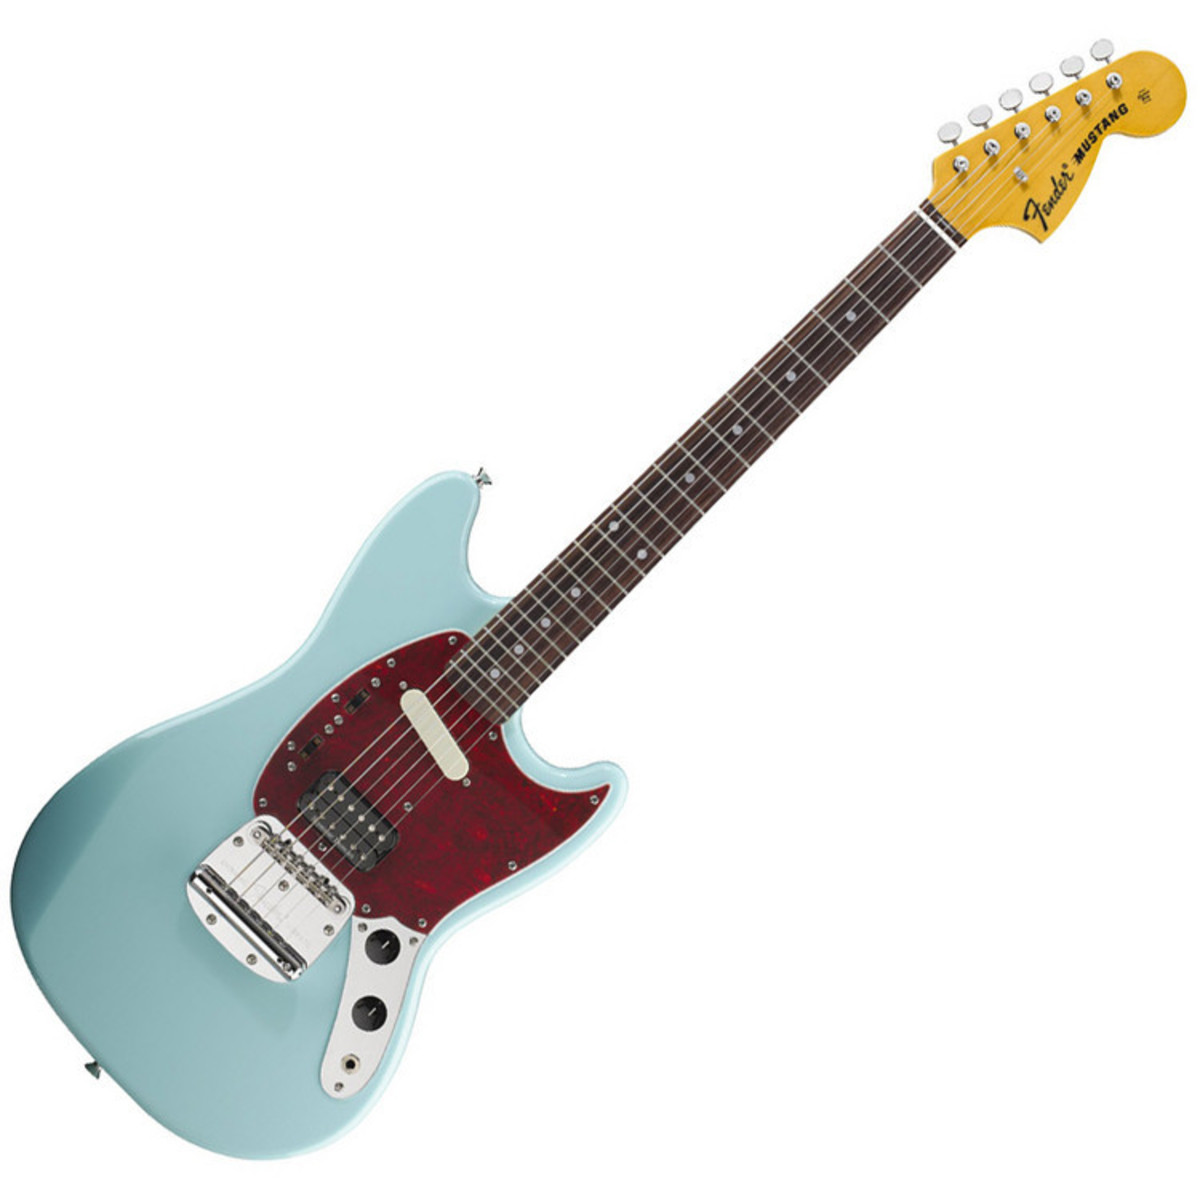 fender kurt cobain mustang signature guitar sonic blue free gift at. Black Bedroom Furniture Sets. Home Design Ideas